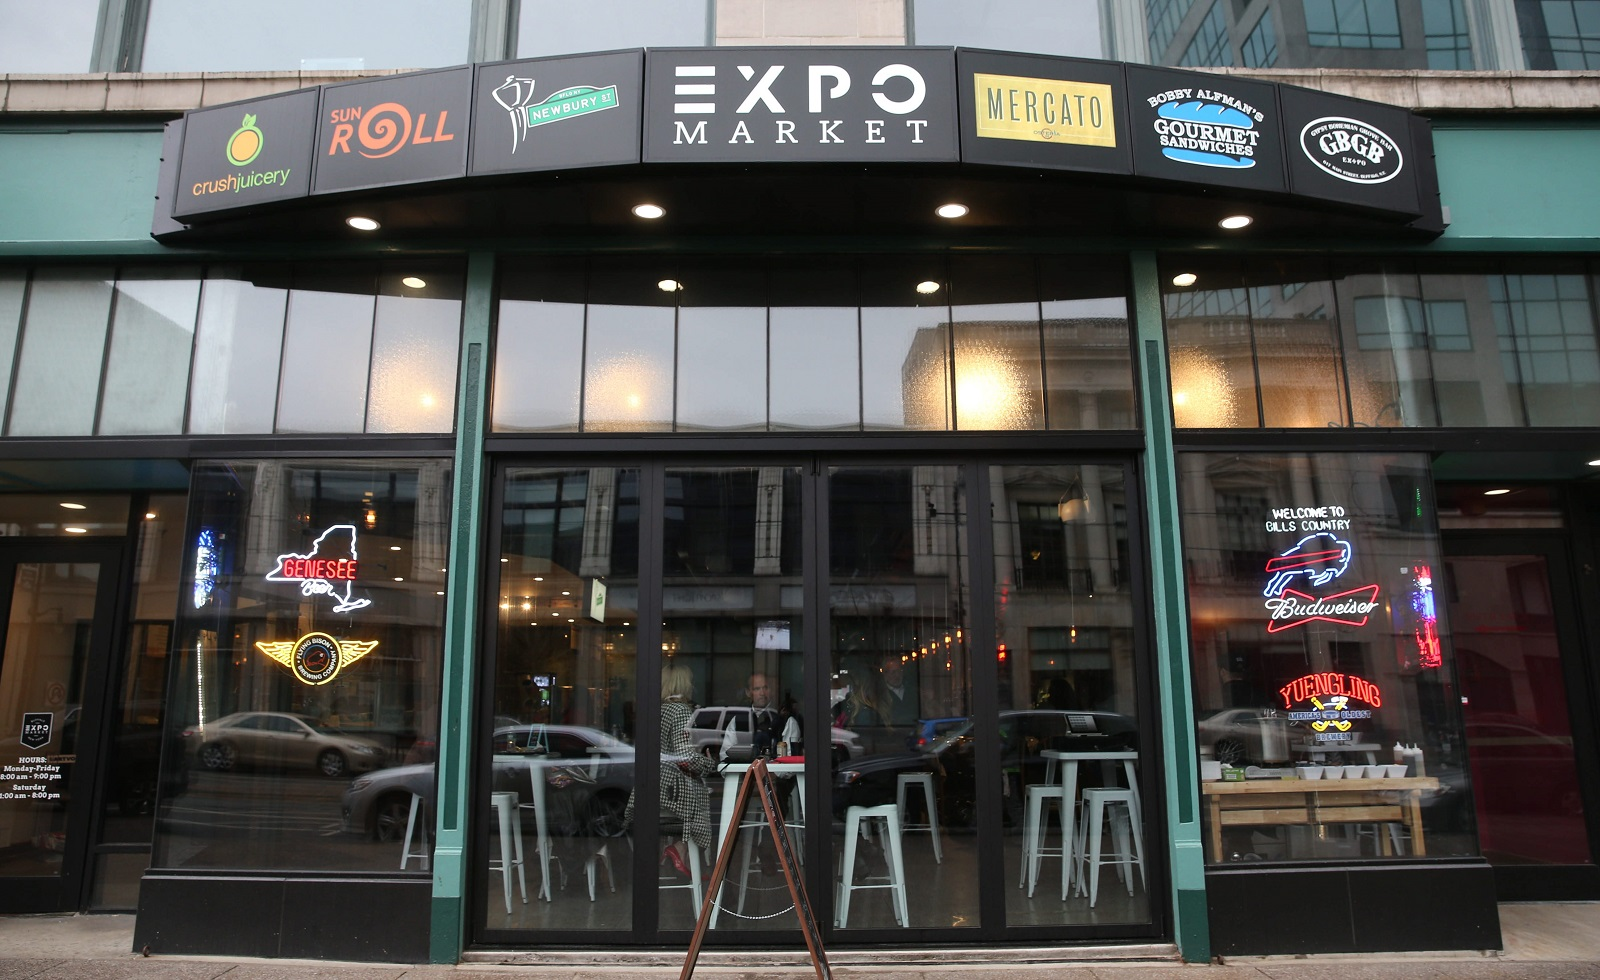 EXPO Market will add hot dogs and burritos as two operations join lineup. (Sharon Cantillon/Buffalo News file photo)